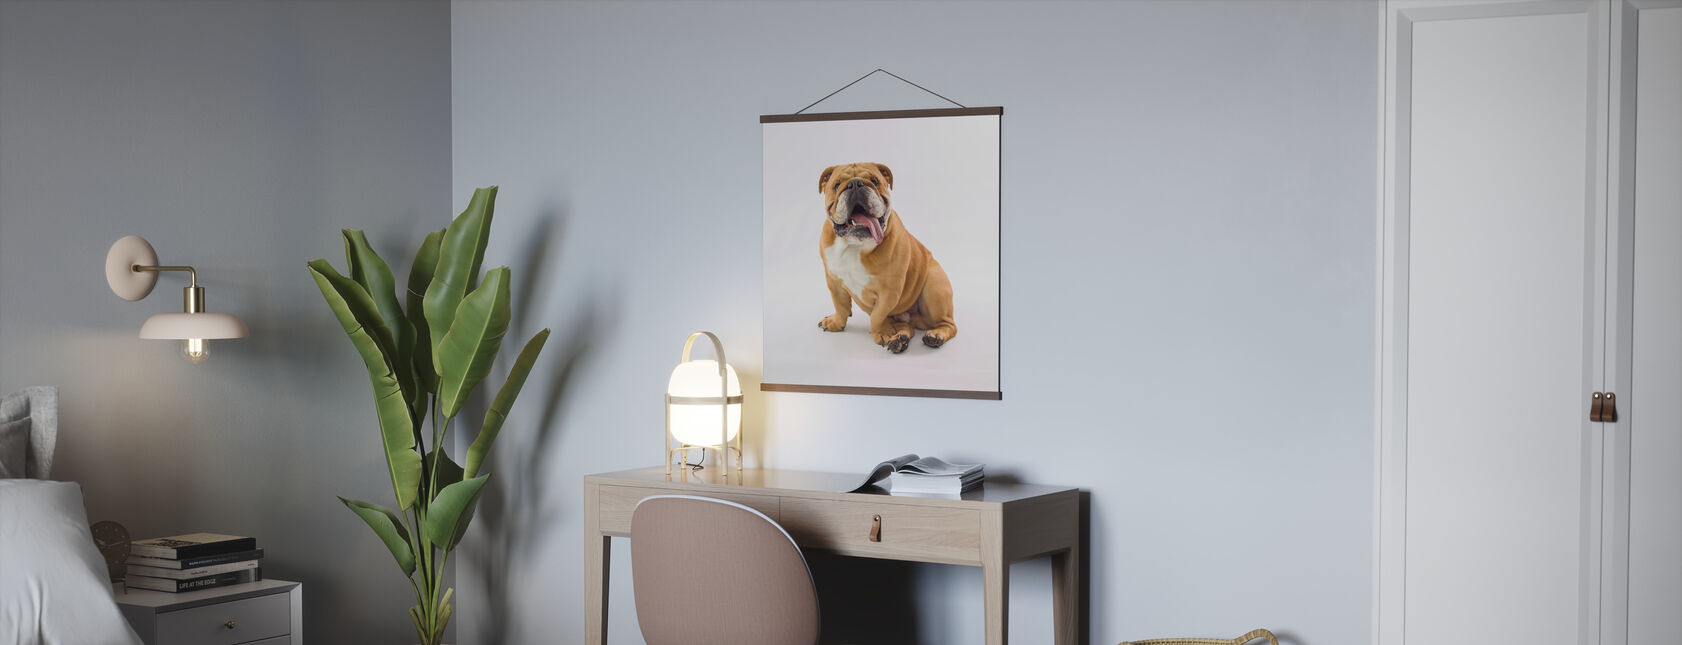 Relaxed Bulldog - Poster - Office